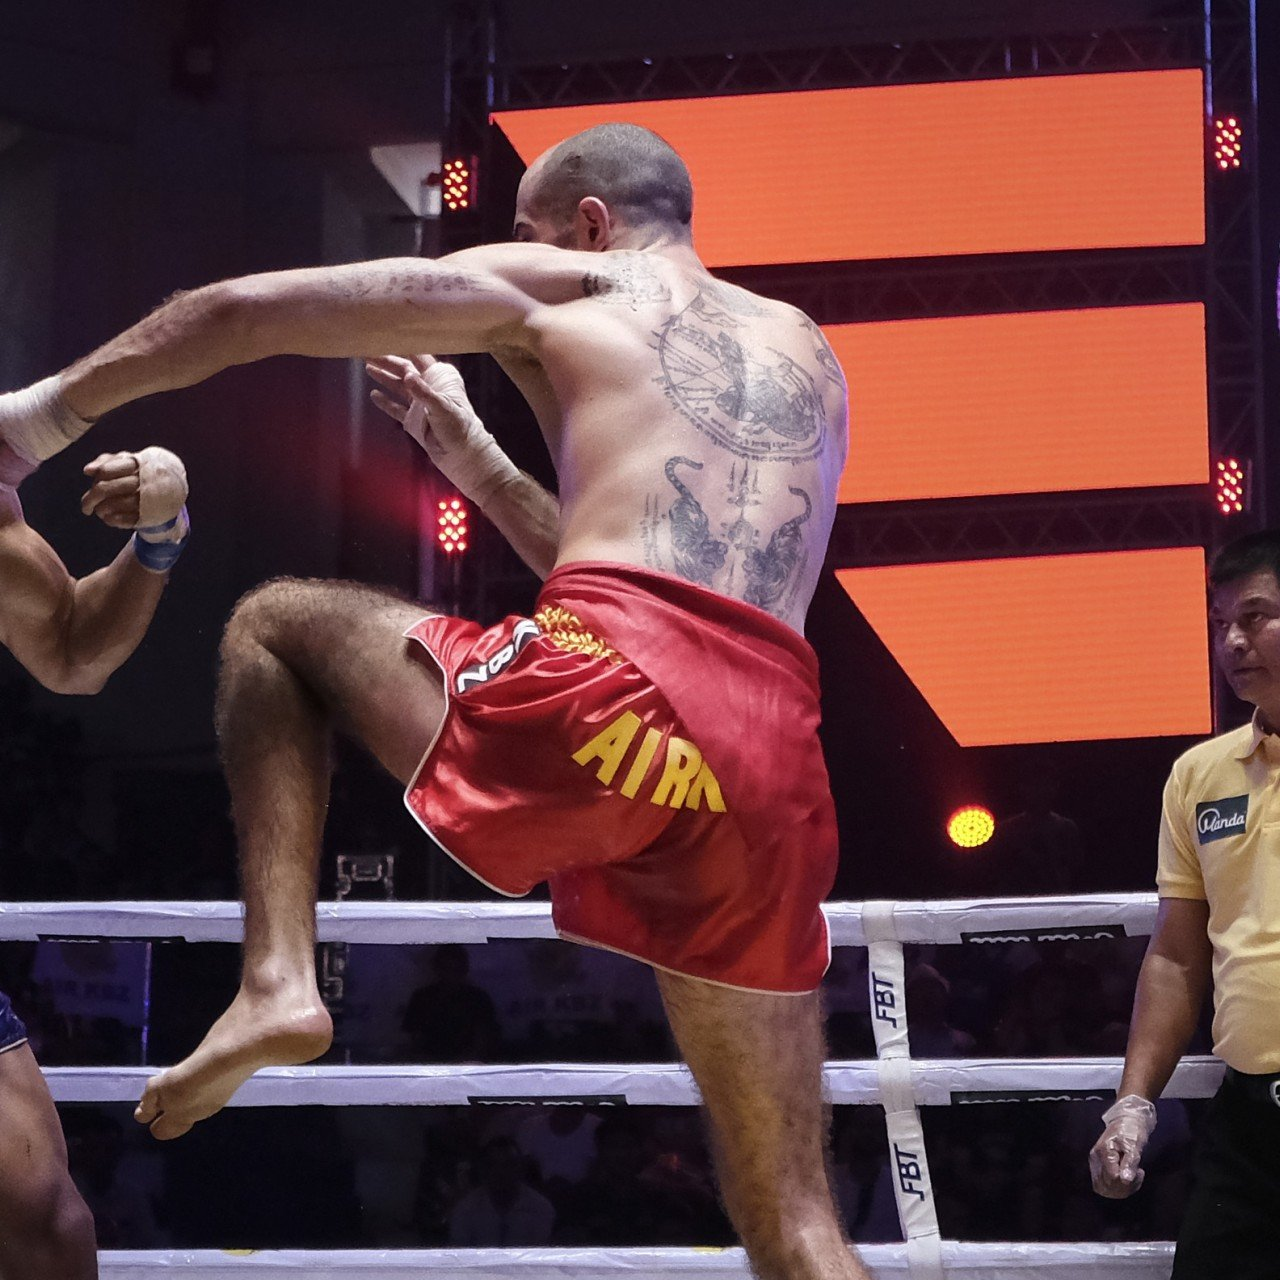 Burmese bare-knuckle kick-boxing goes mainstream as foreigners